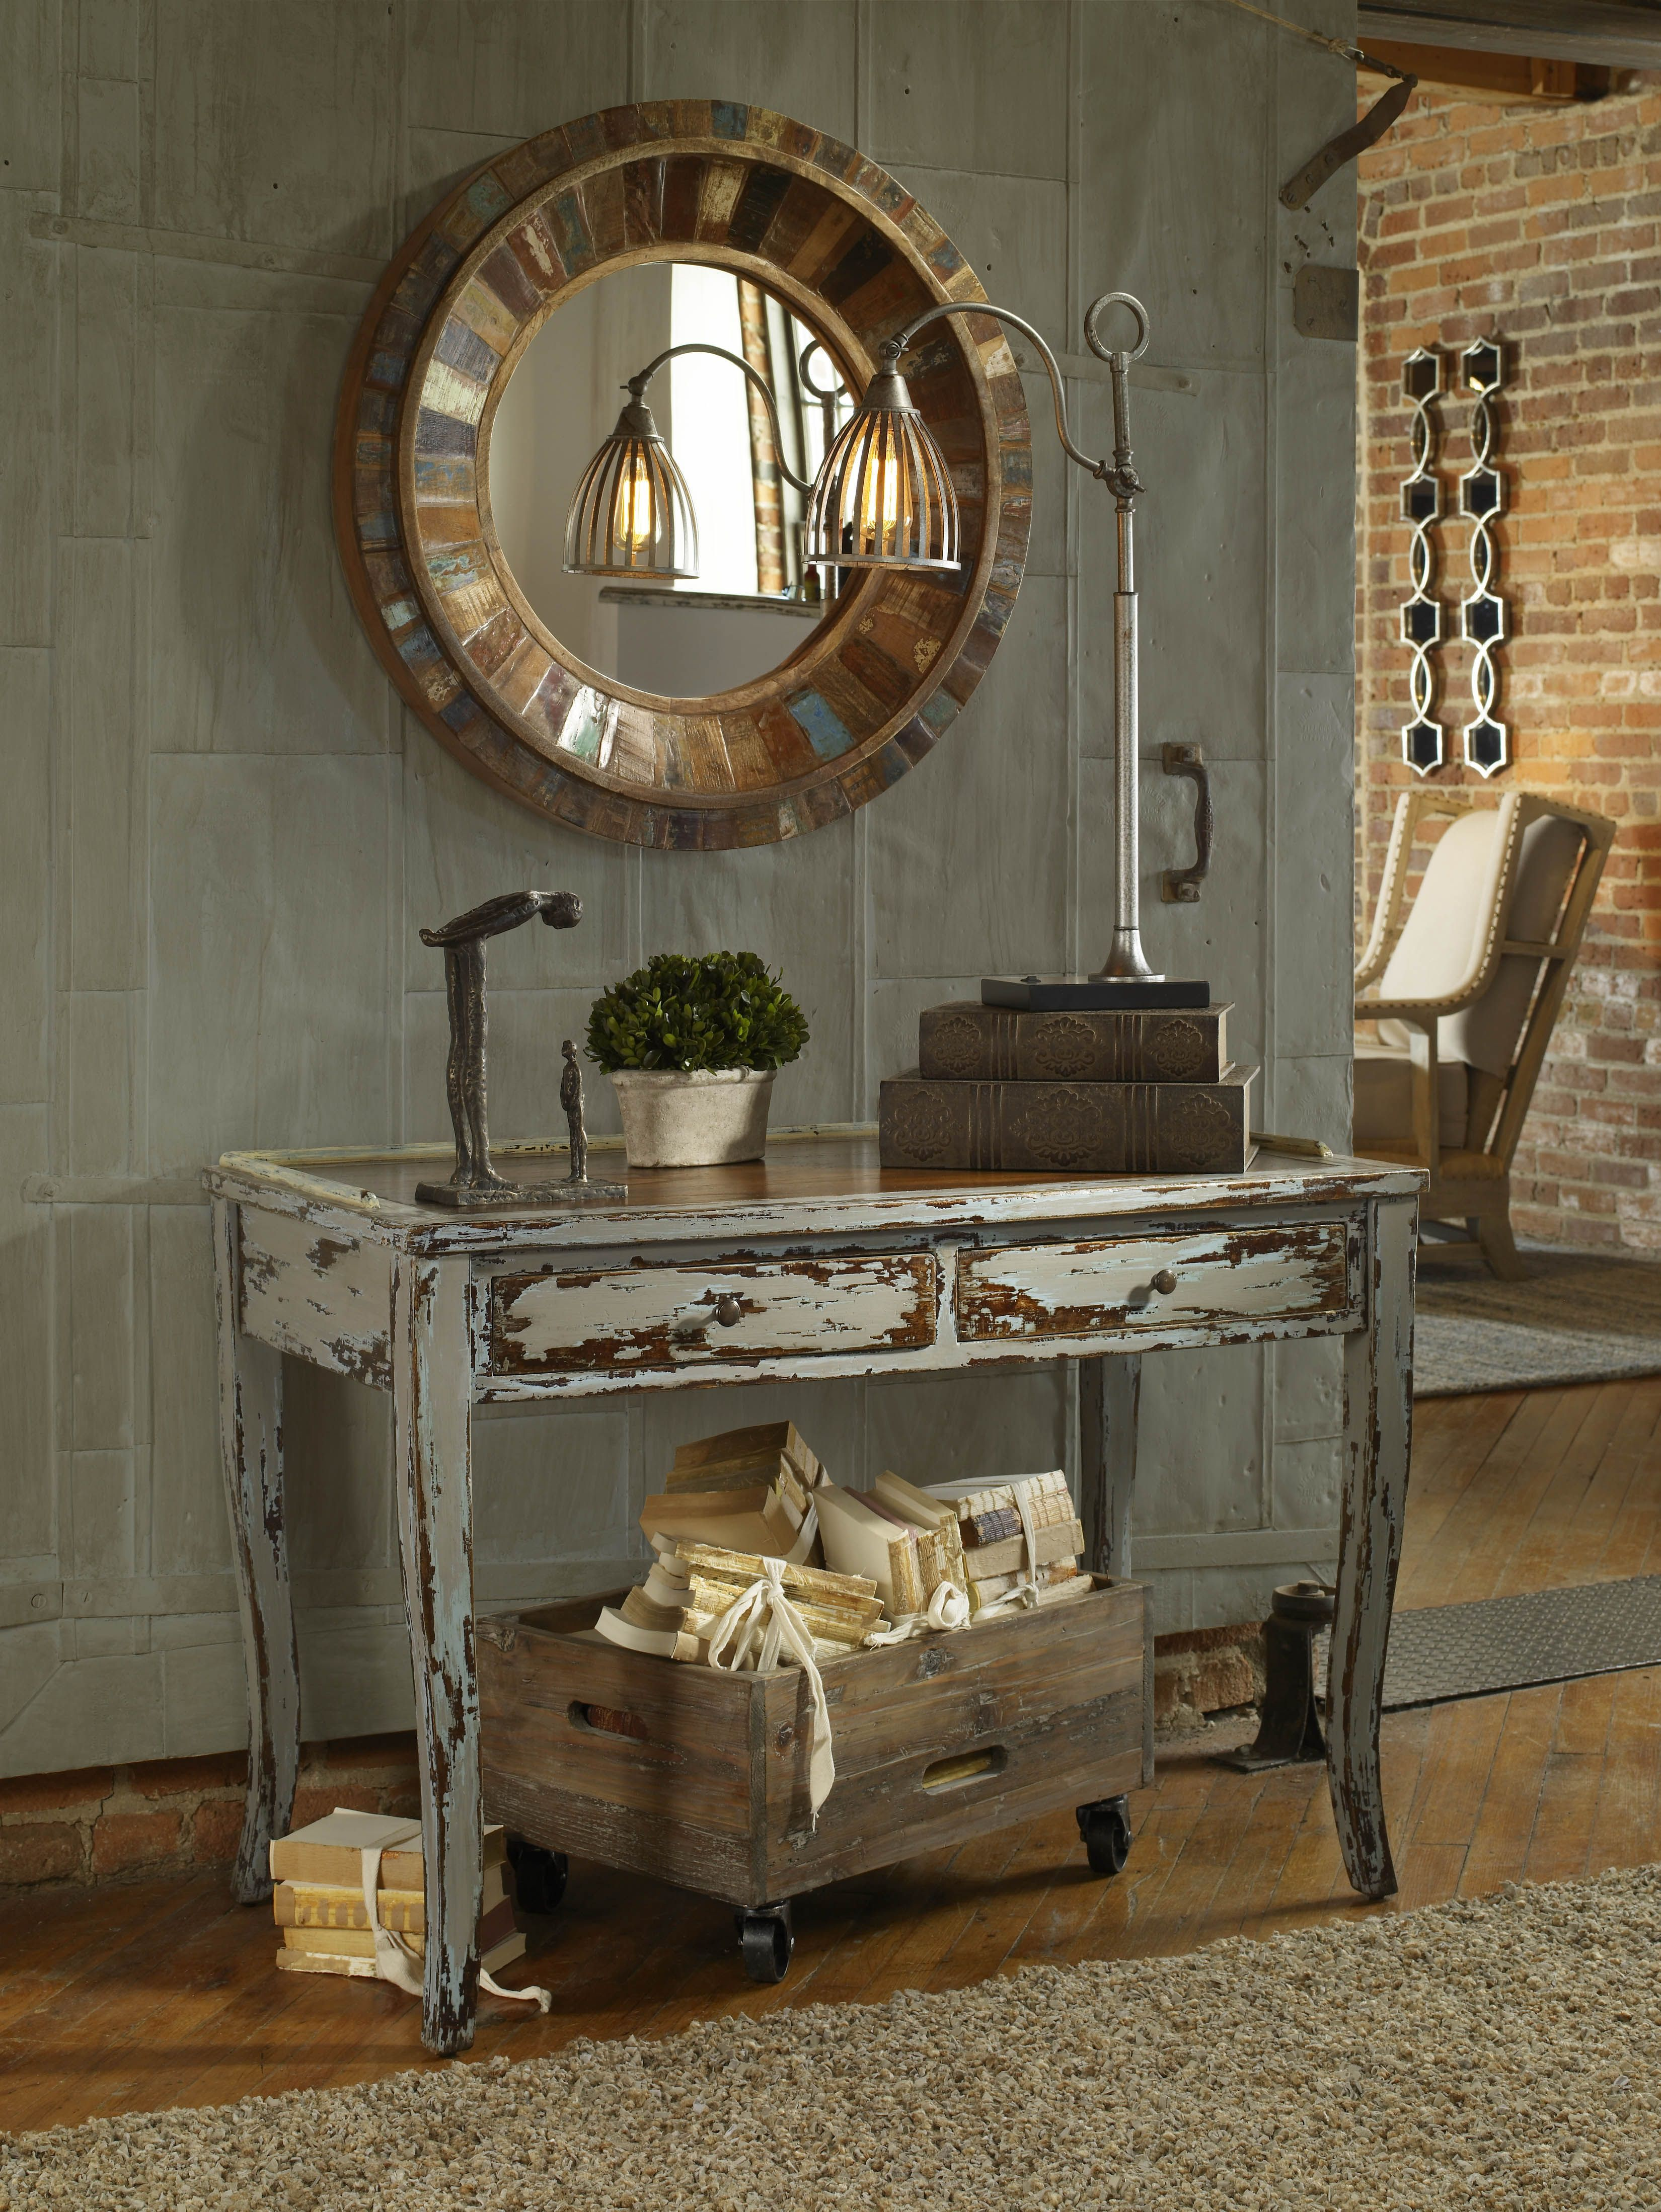 prodigious Bellacor Mirrors Part - 10: How to Design a Welcoming and Functional Entryway - Bellacor